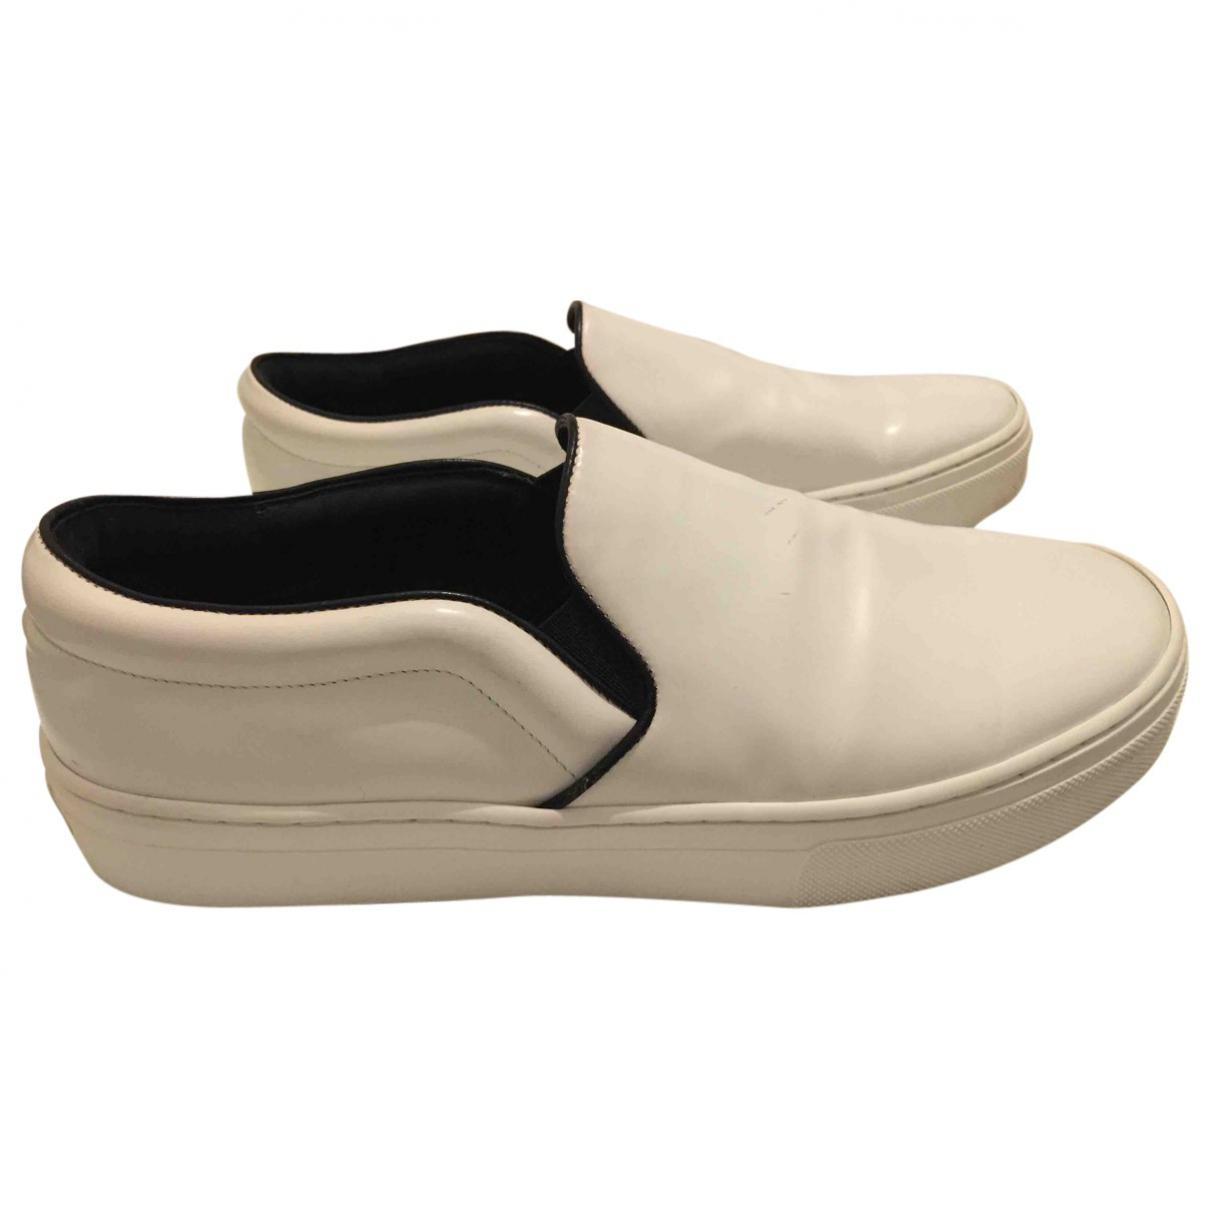 Pre-owned - Leather trainers Celine FZLcEz